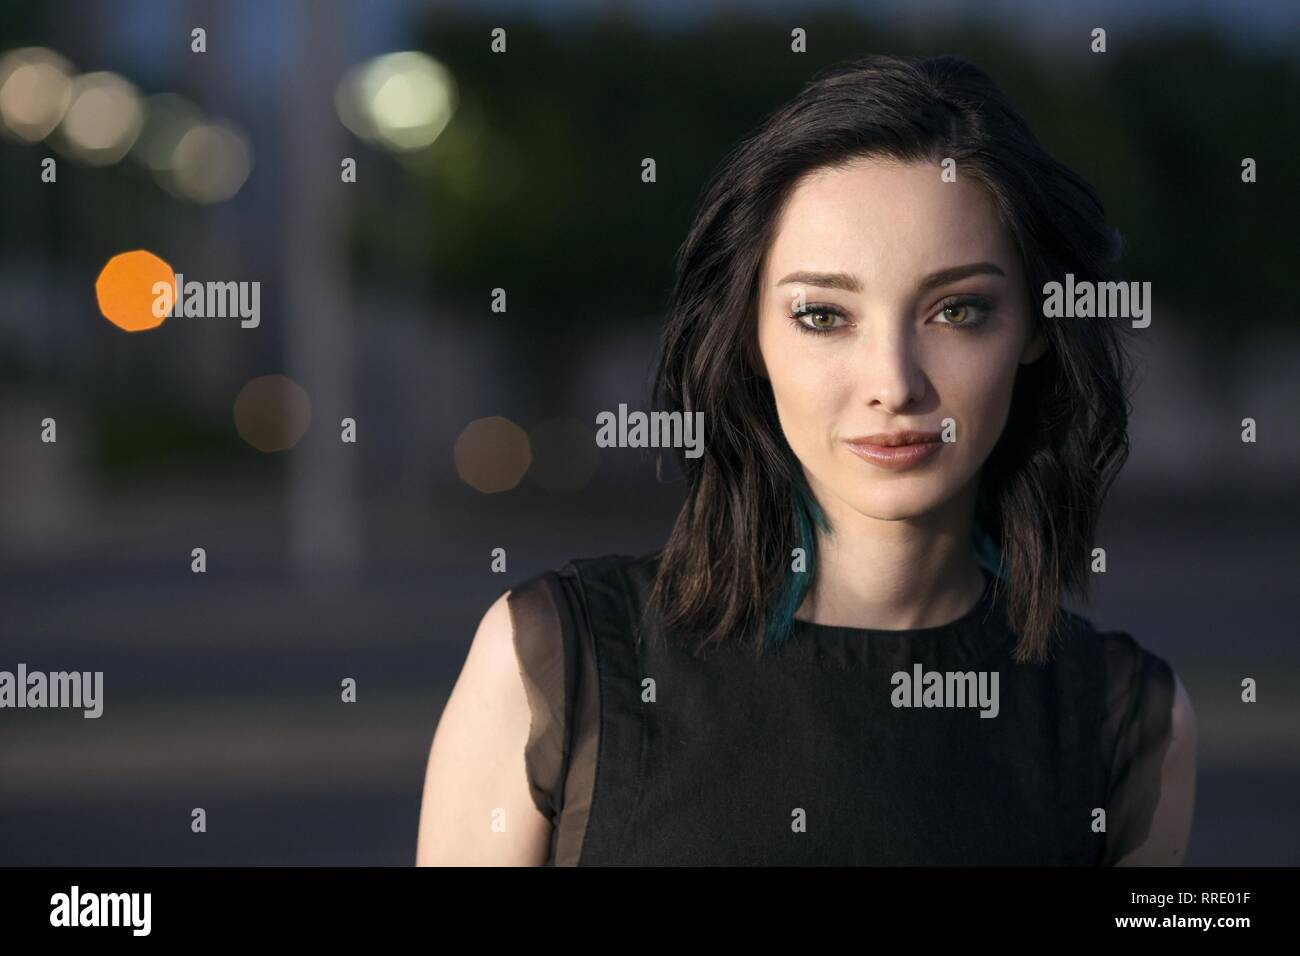 THE GIFTED, EMMA DUMONT, 2017 - Stock Image